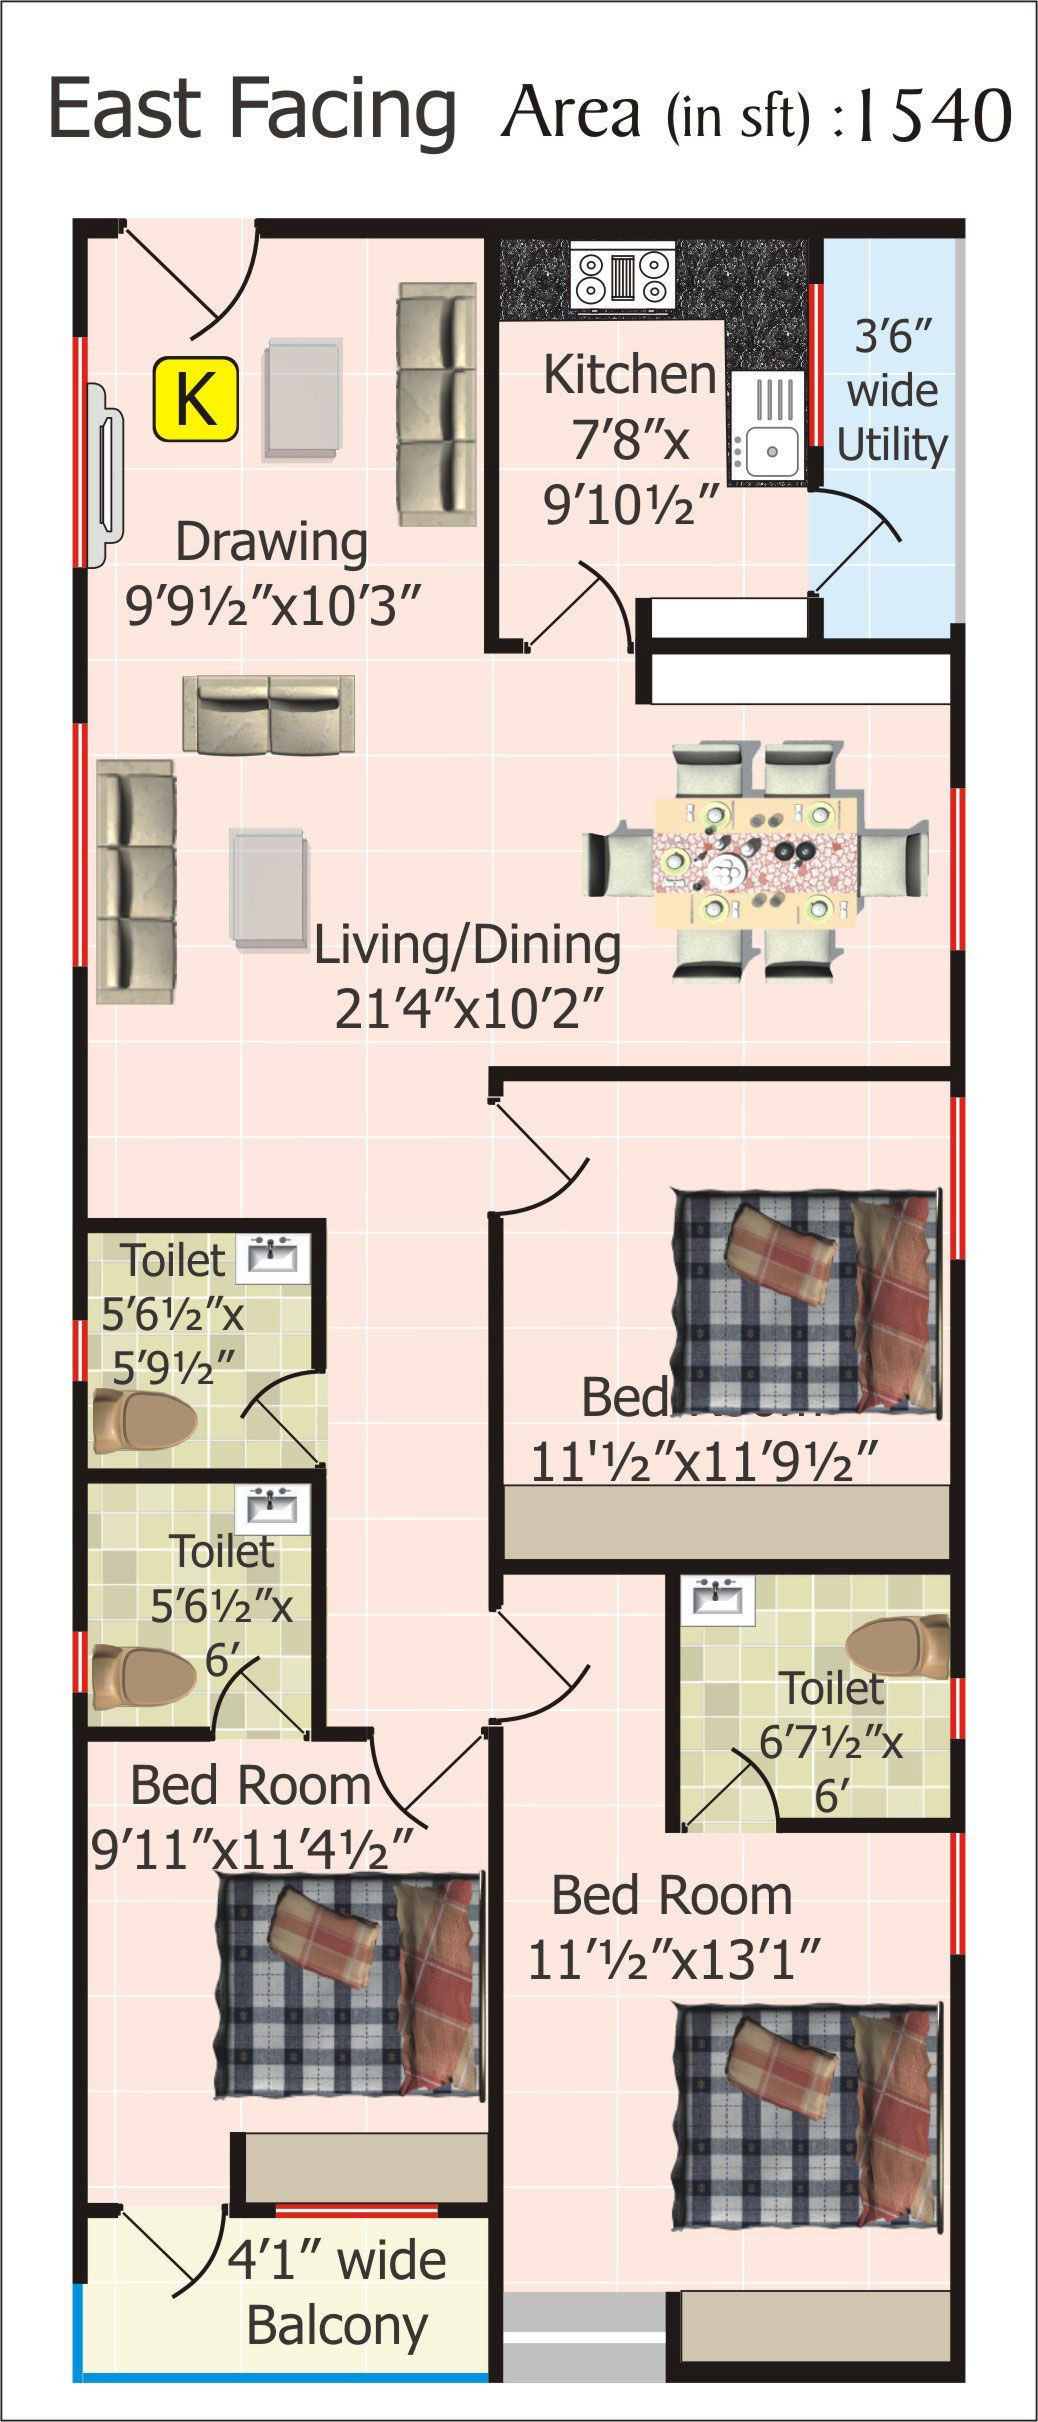 3d House Plans software Free Download Best Of 1f42 India House Plans software Free Download